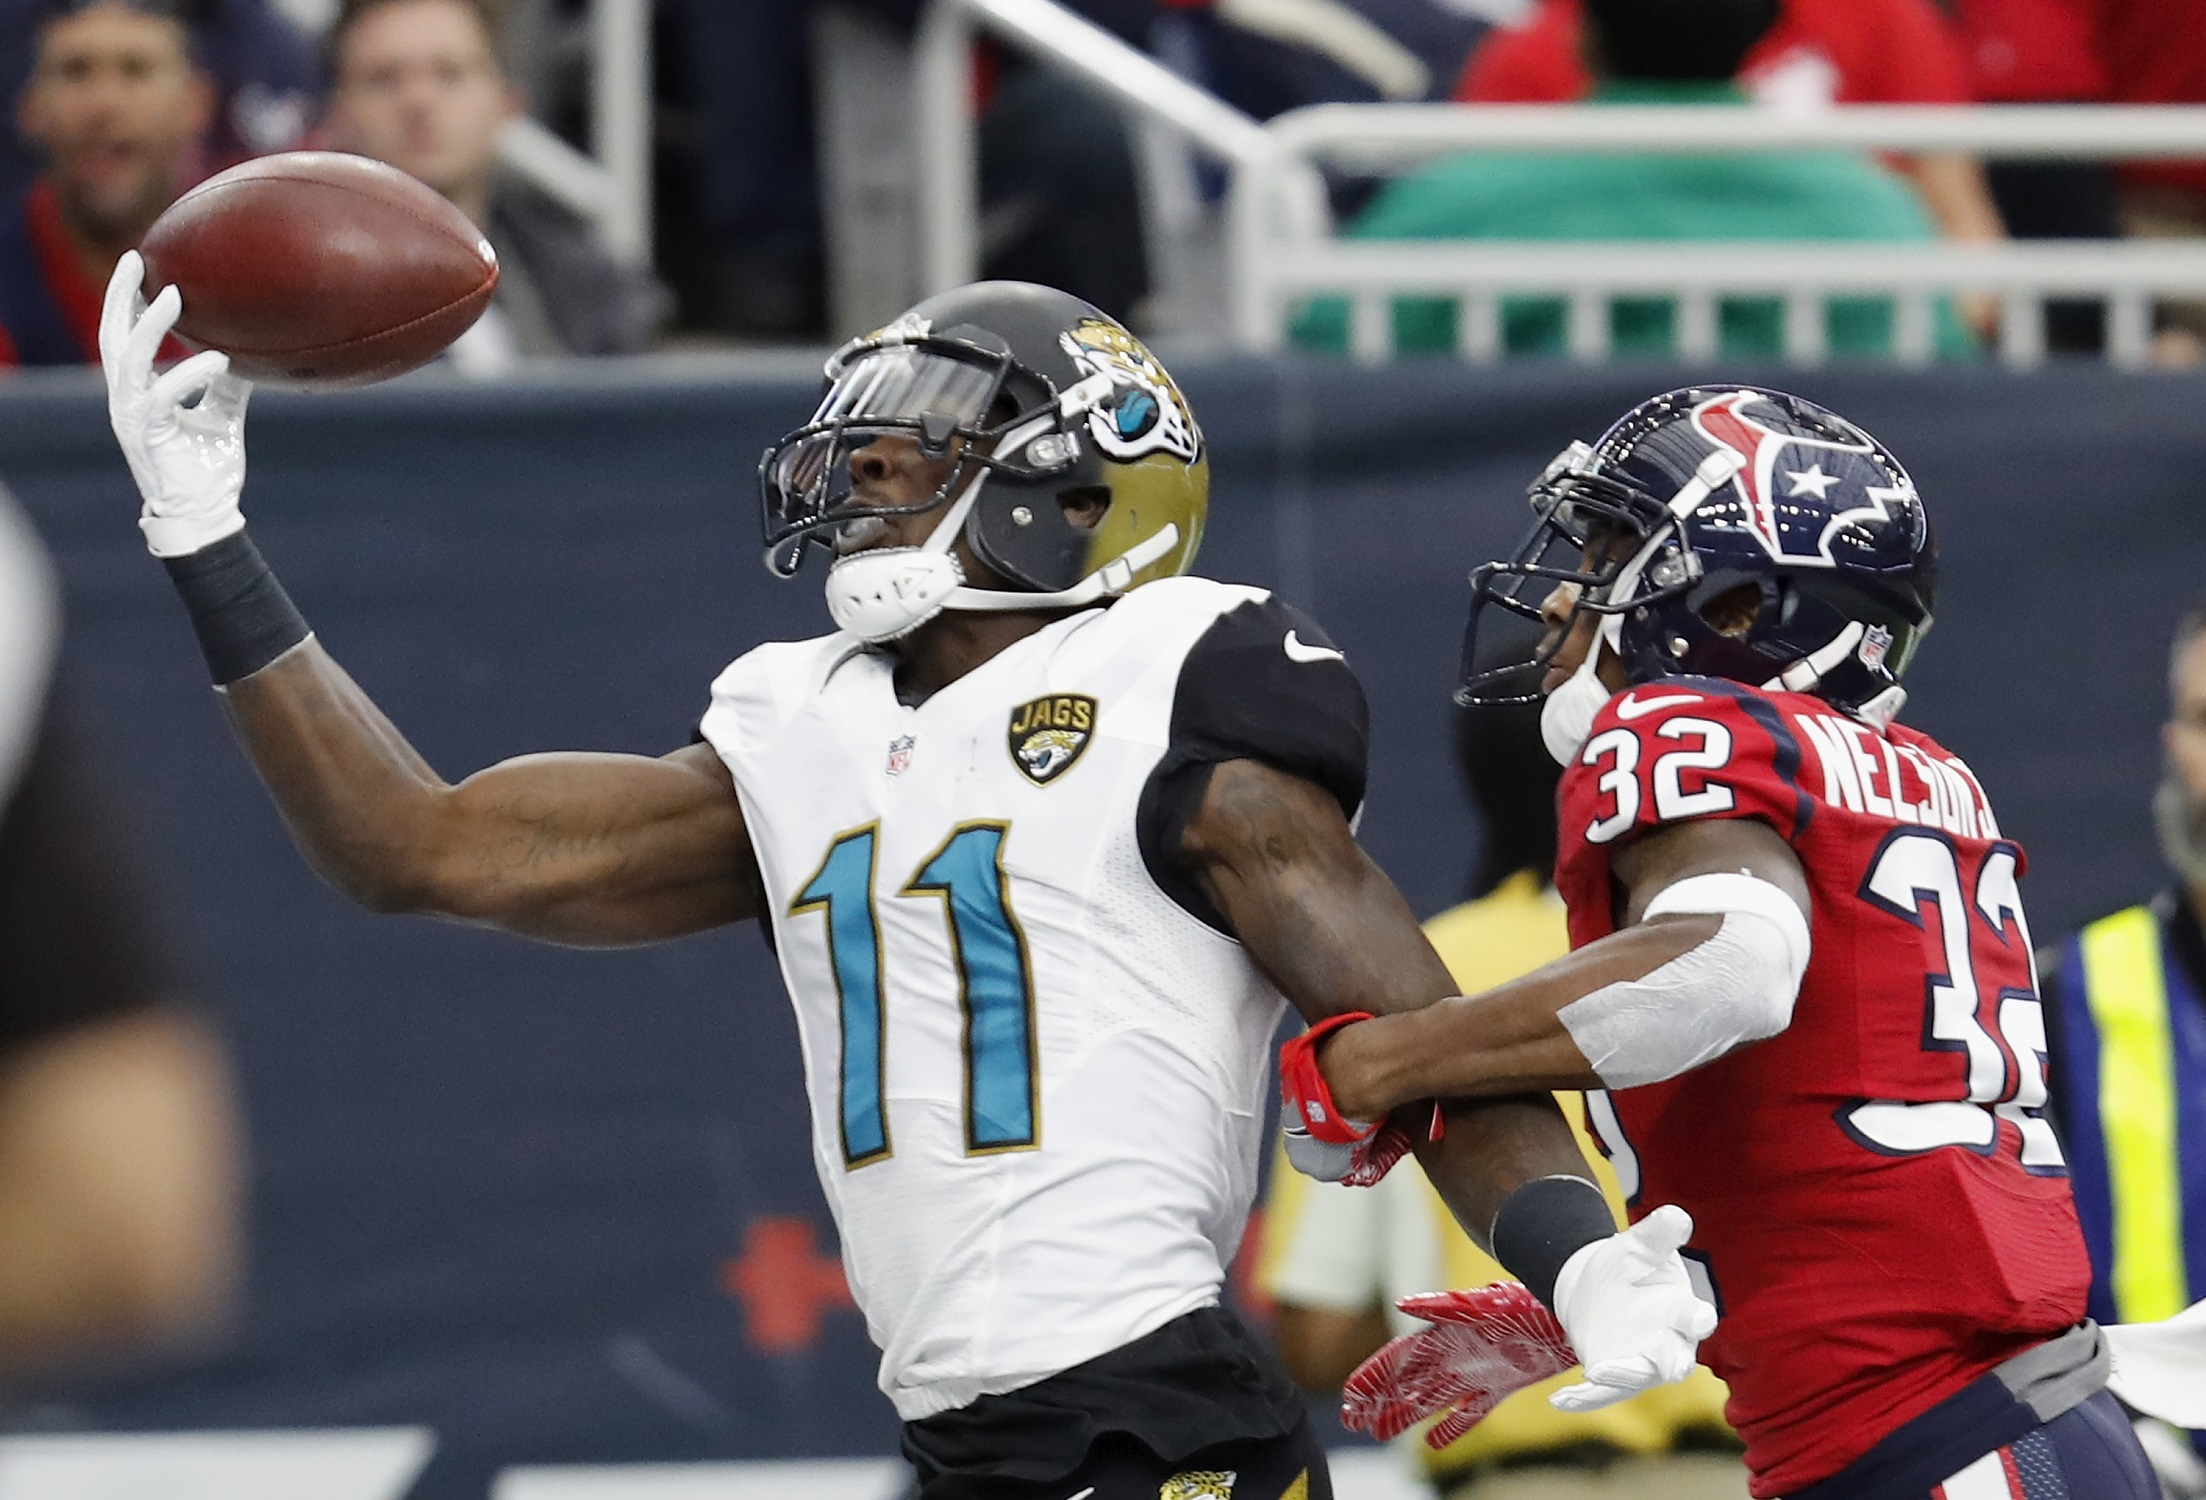 Leonard Fournette, Marqise Lee expected to miss Thursday's preseason game vs. Buccaneers